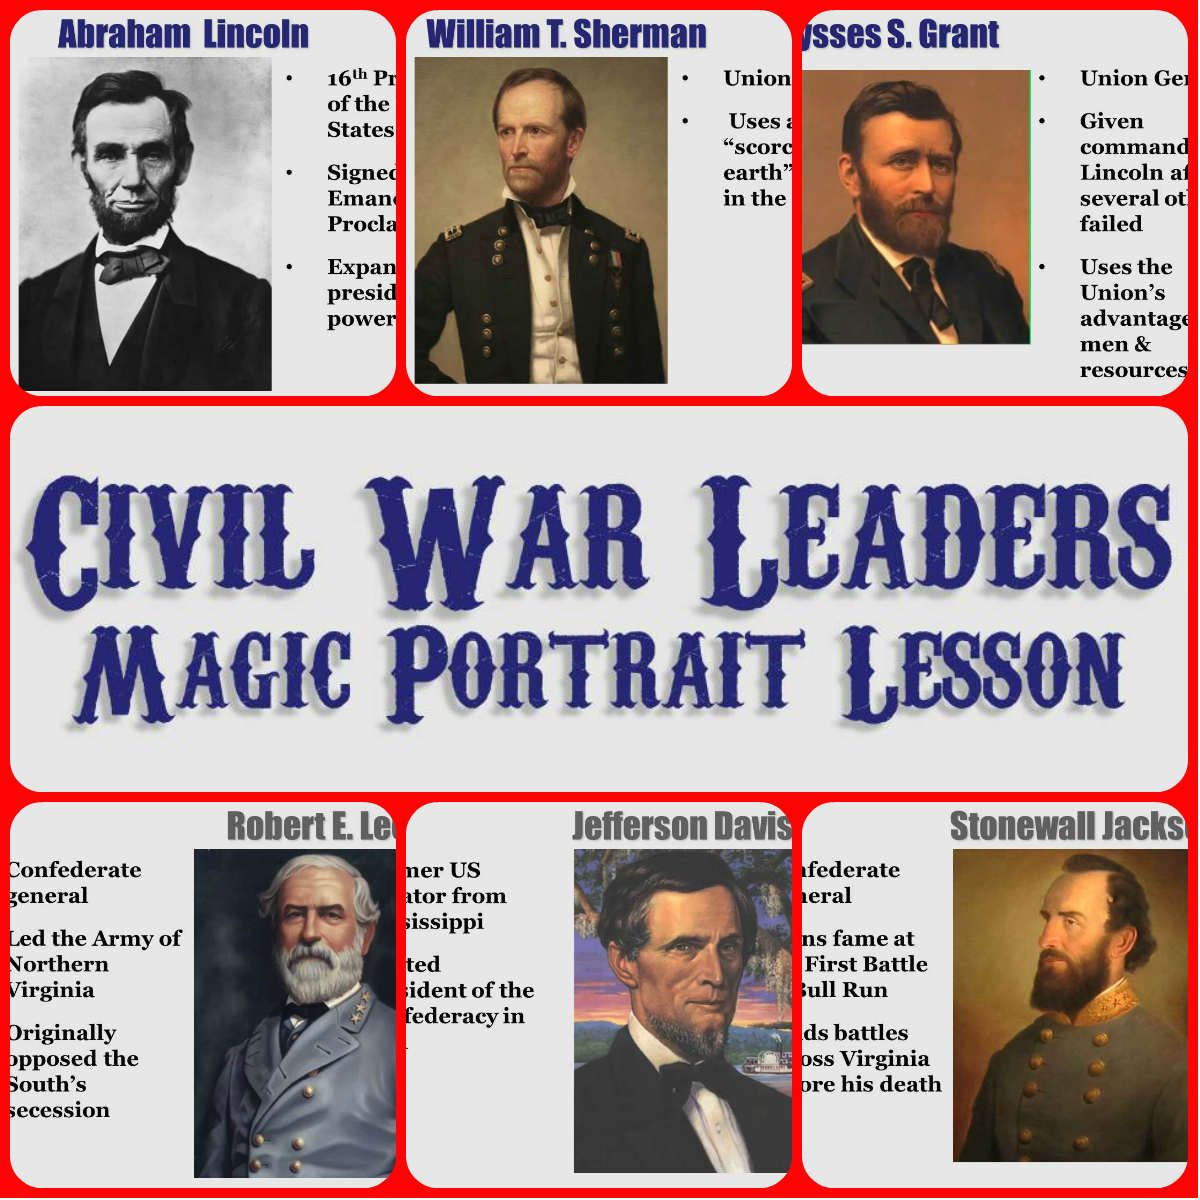 Civil War Leaders Magic Portrait Lesson